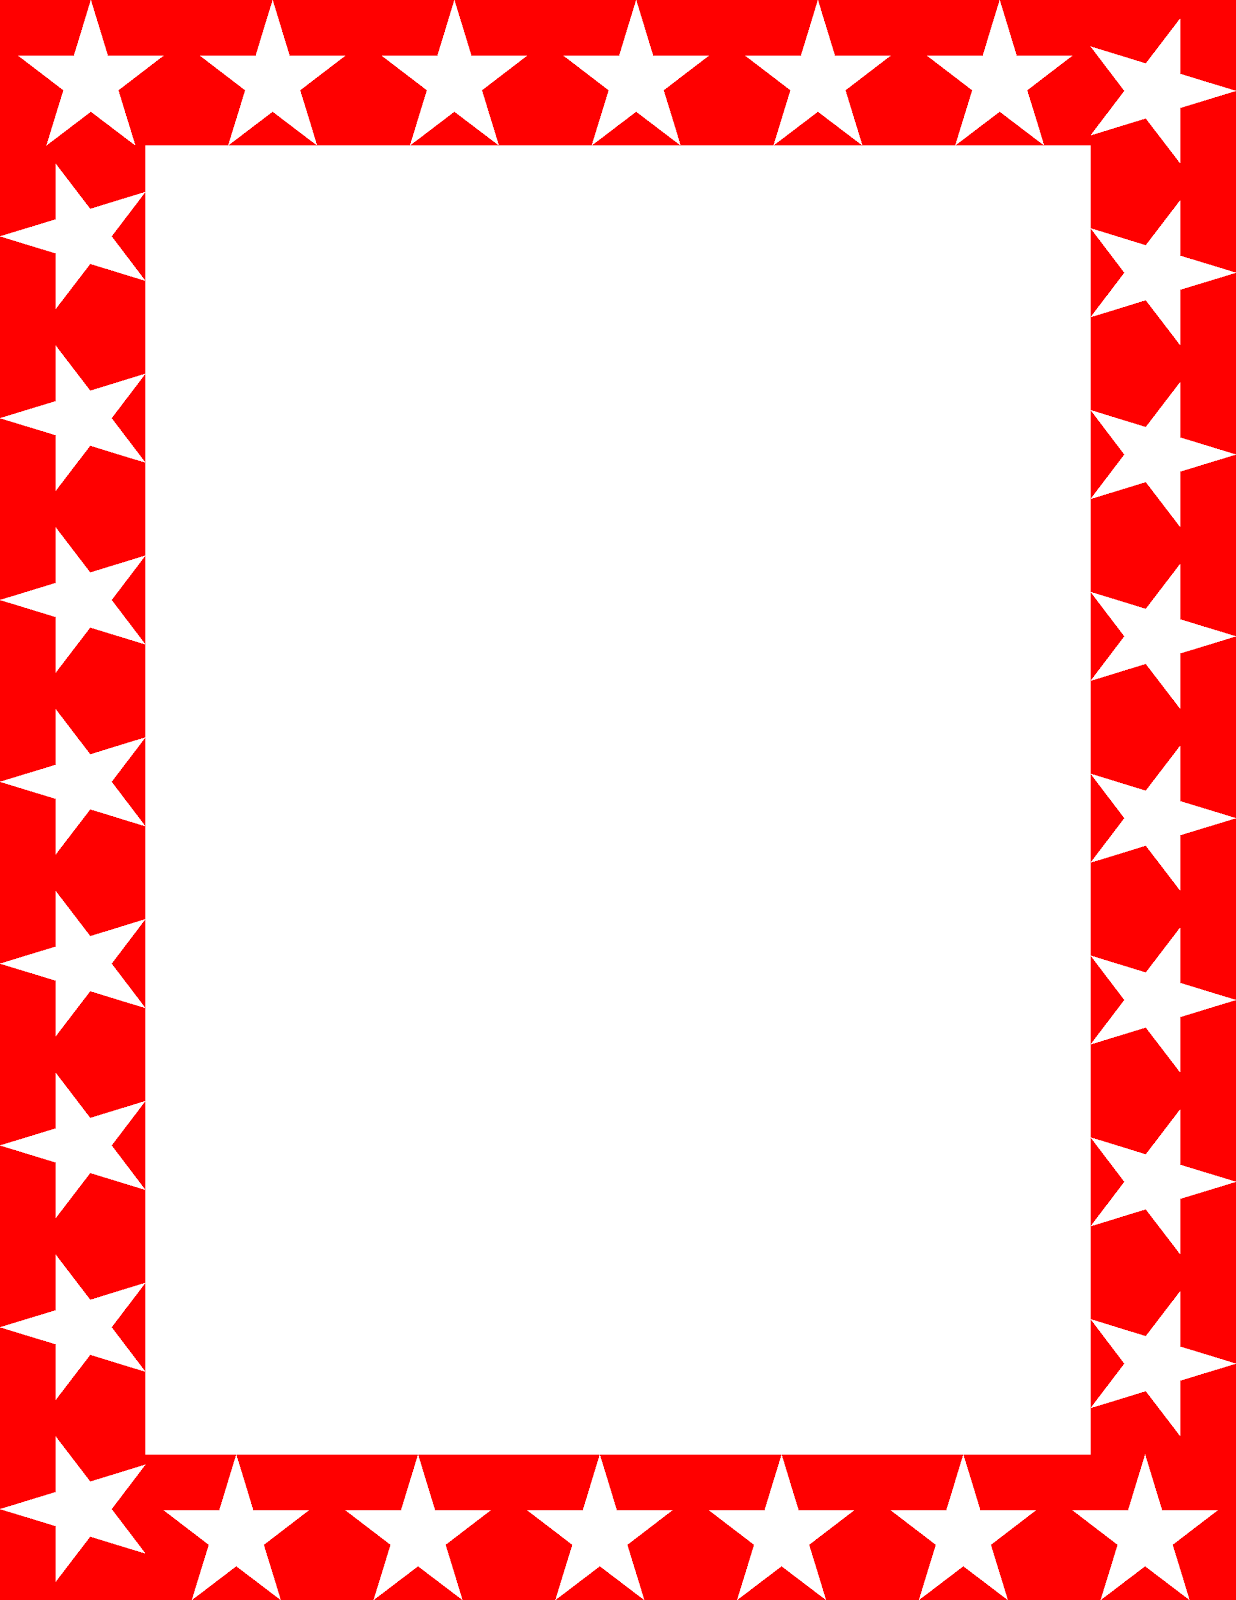 Red Star Borders And Frames Drawing Free Image